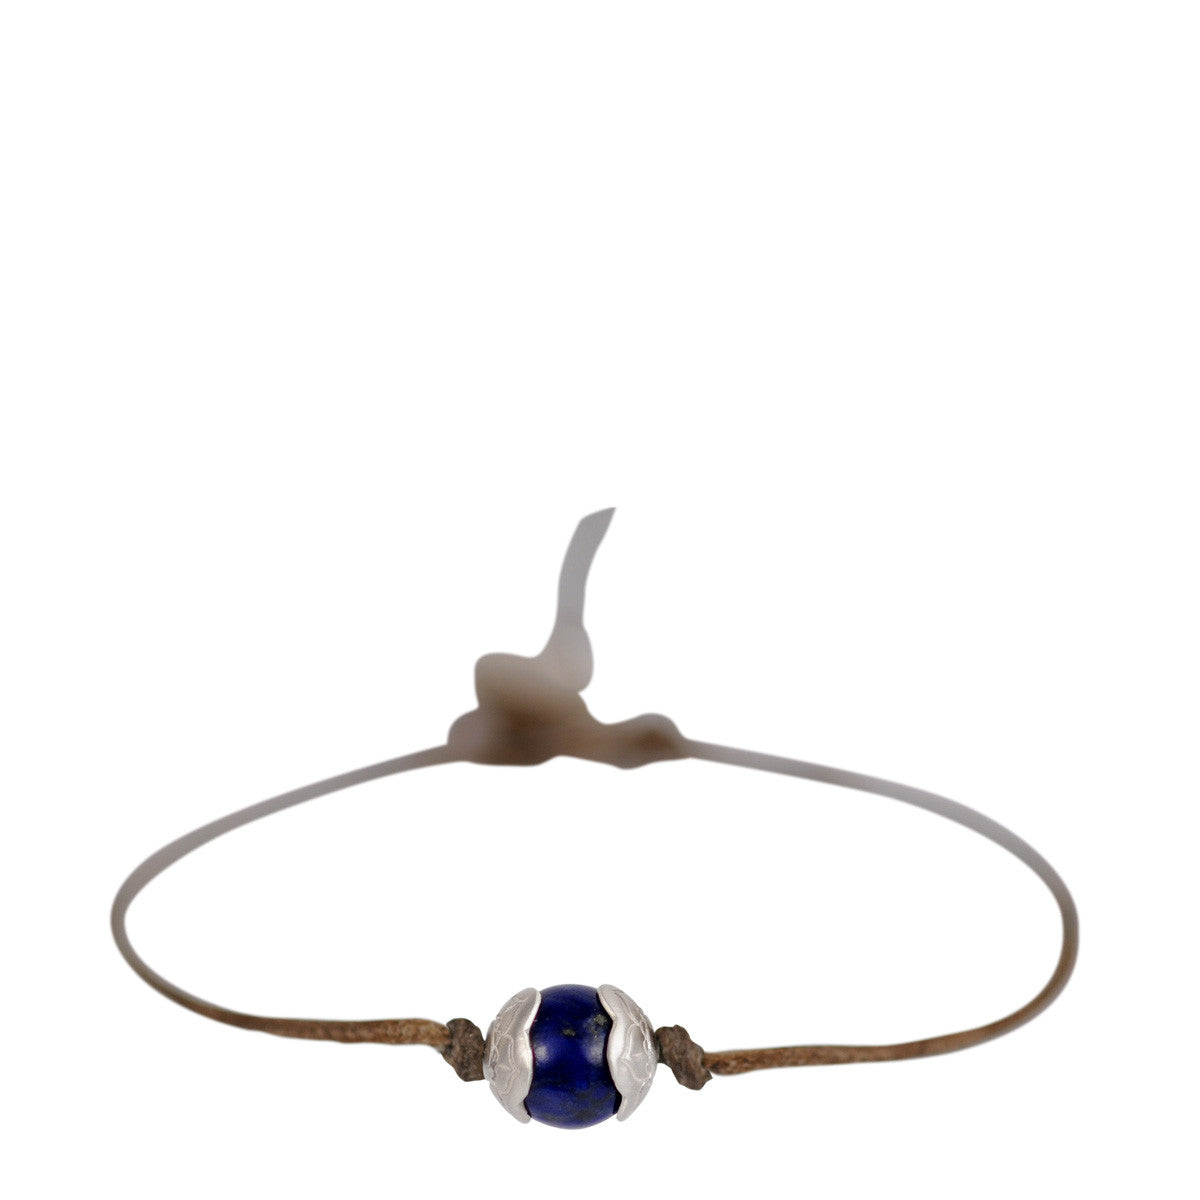 Sterling Silver Single Engraved Flower Cap Bracelet with Lapis on Cord